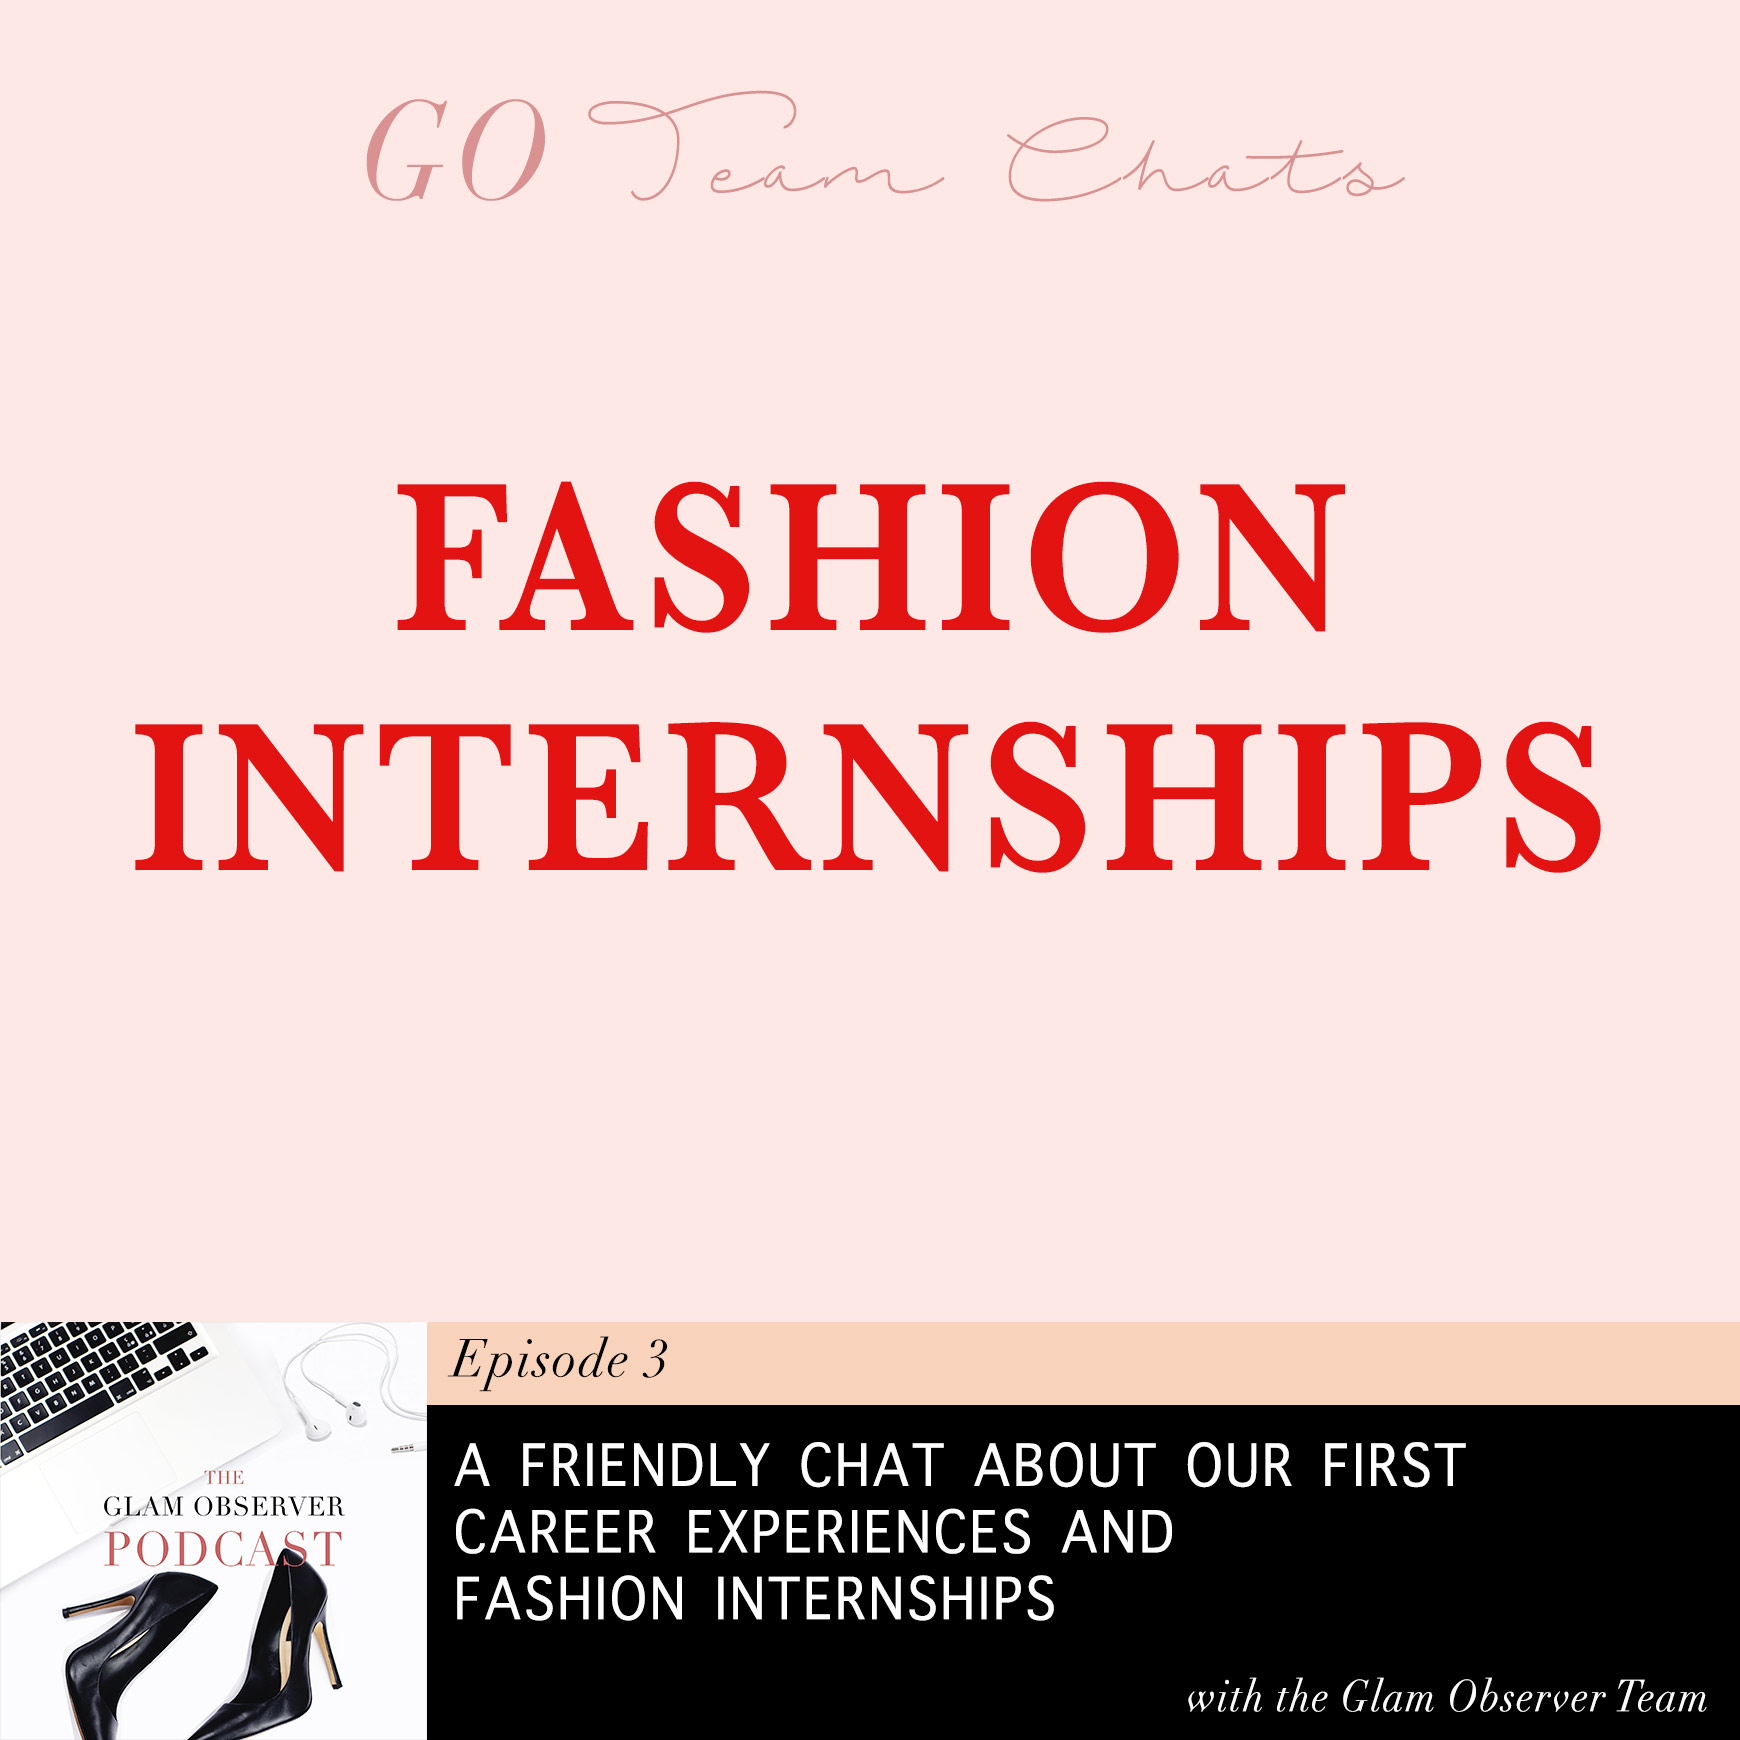 GO Team Chats: Our Careers and Thoughts on Fashion Internships